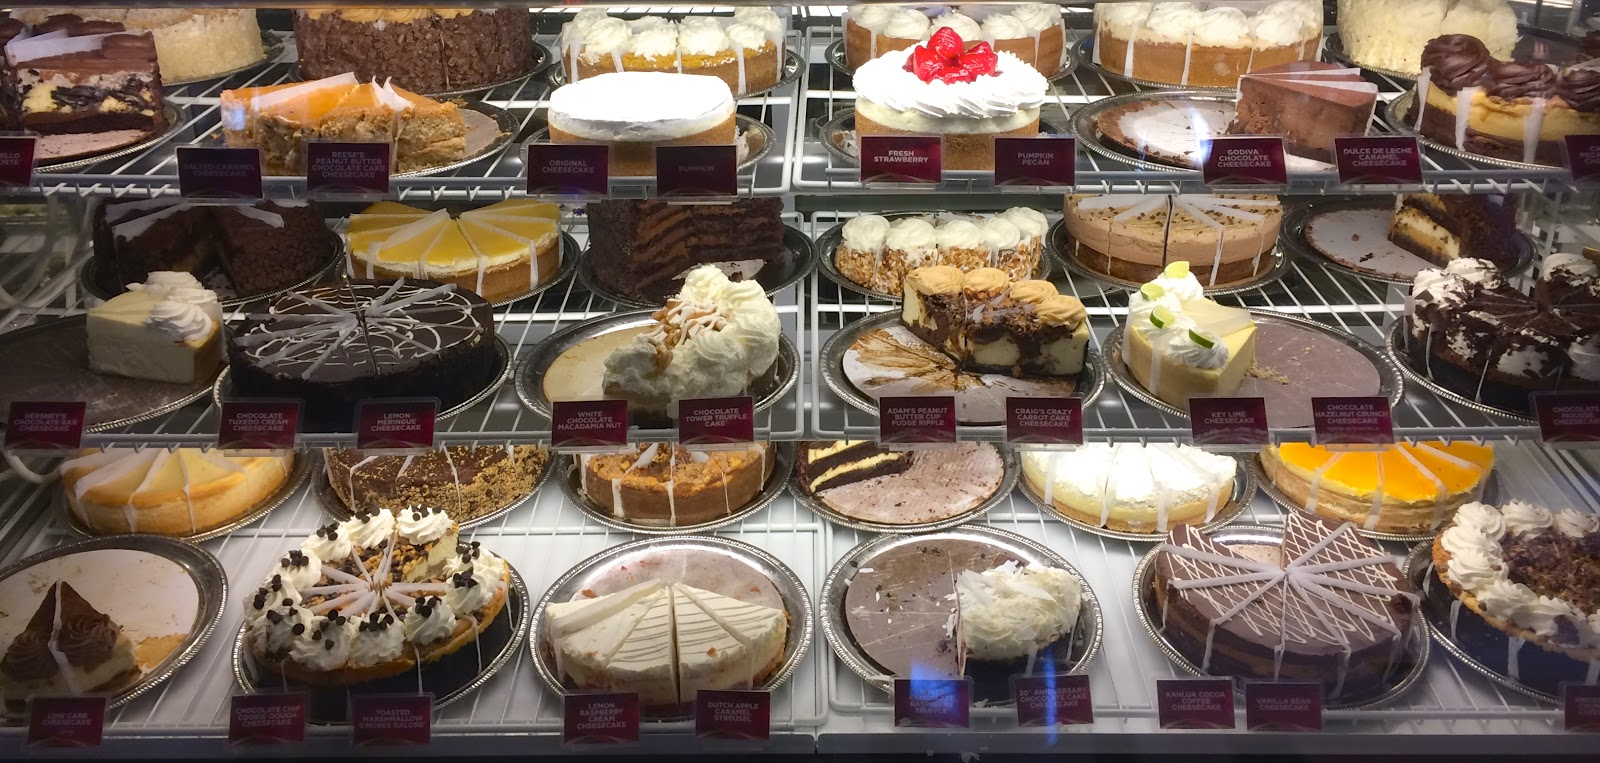 The Cheesecake Factory Happy Hour Specials are a great deal if you can make it there between 4 -6pm on a weekday. Even though this is such a small window to catch a deal, it can still be worth it if your favorite appetizers and drinks are part of the happy hour deals.